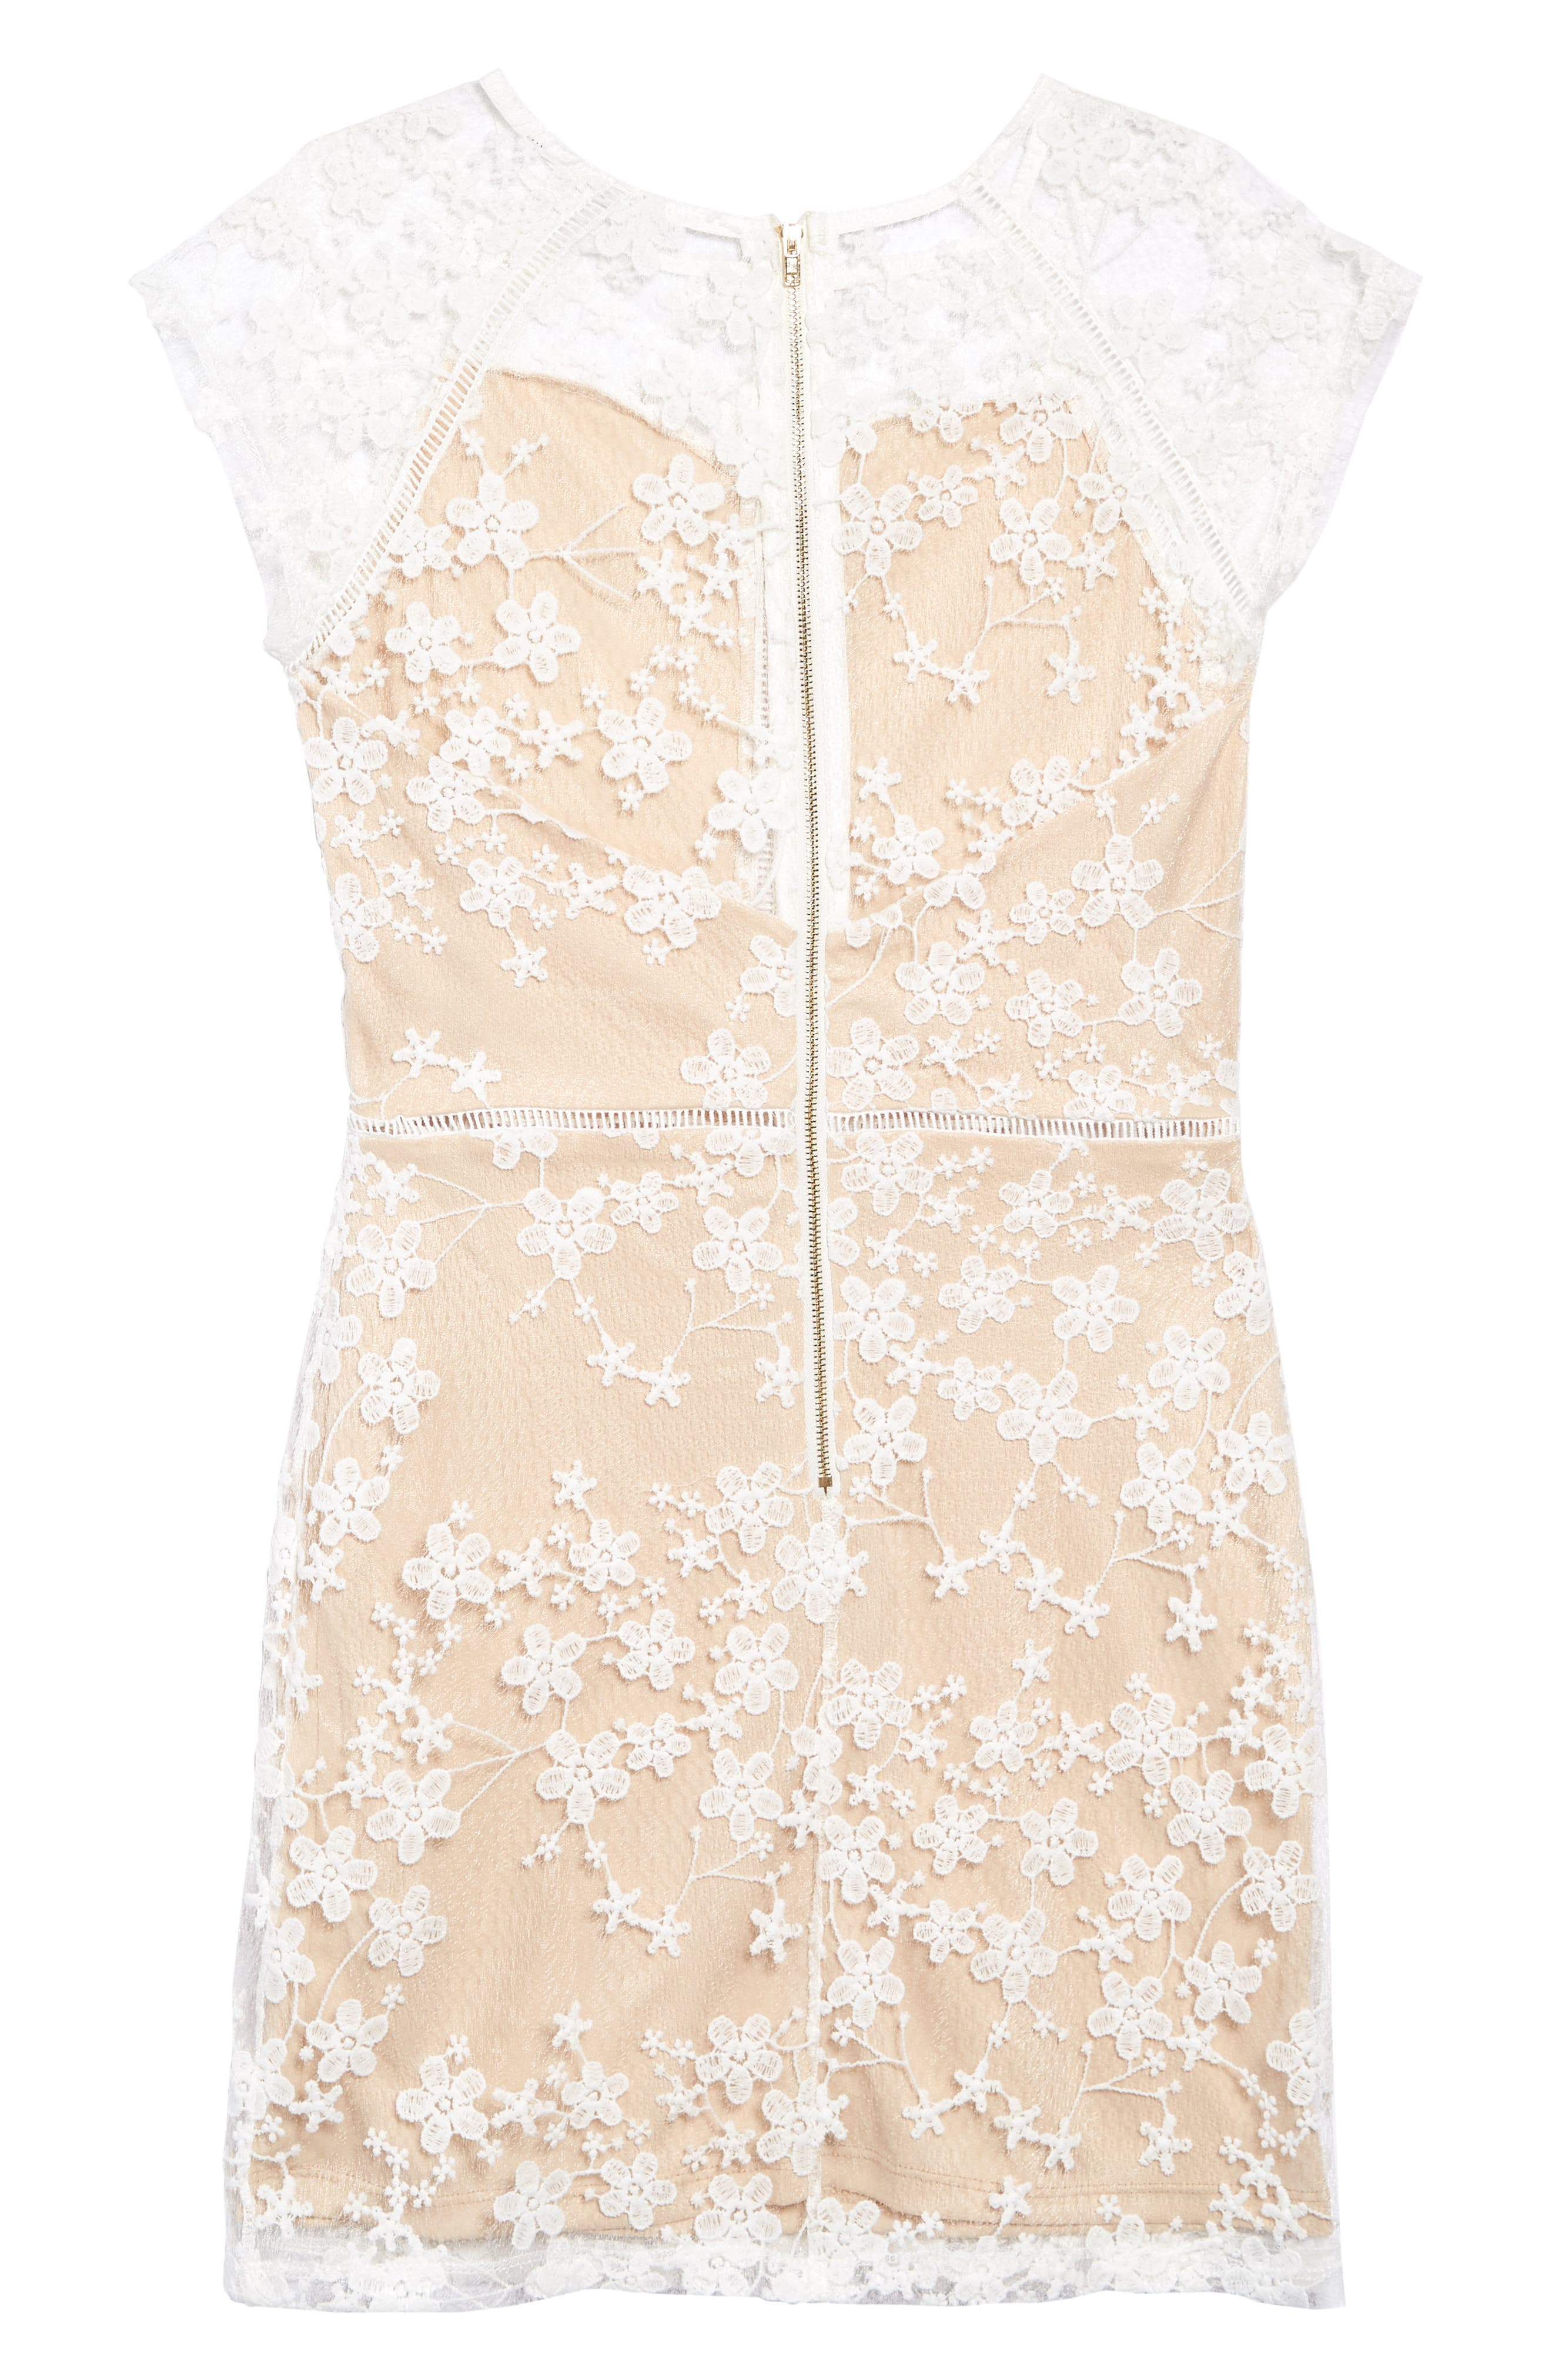 MISS BEHAVE, Lace Overlay Dress, Alternate thumbnail 2, color, WHITE/ NUDE